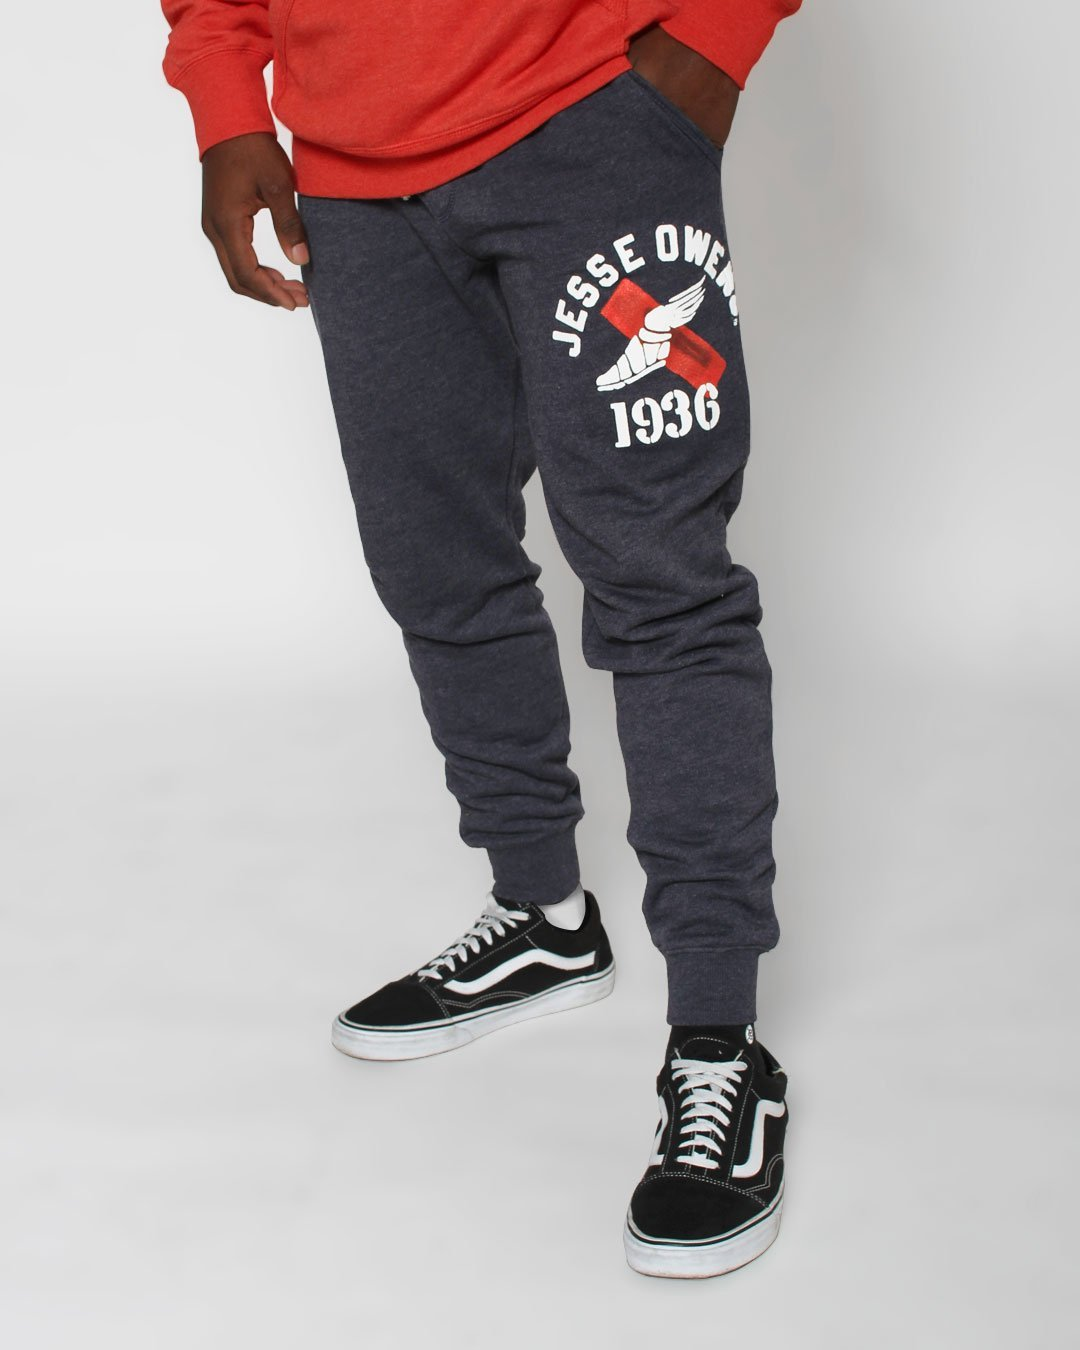 Jesse Owens Ground Breakers Sweatpants - Roots of Inc dba Roots of Fight